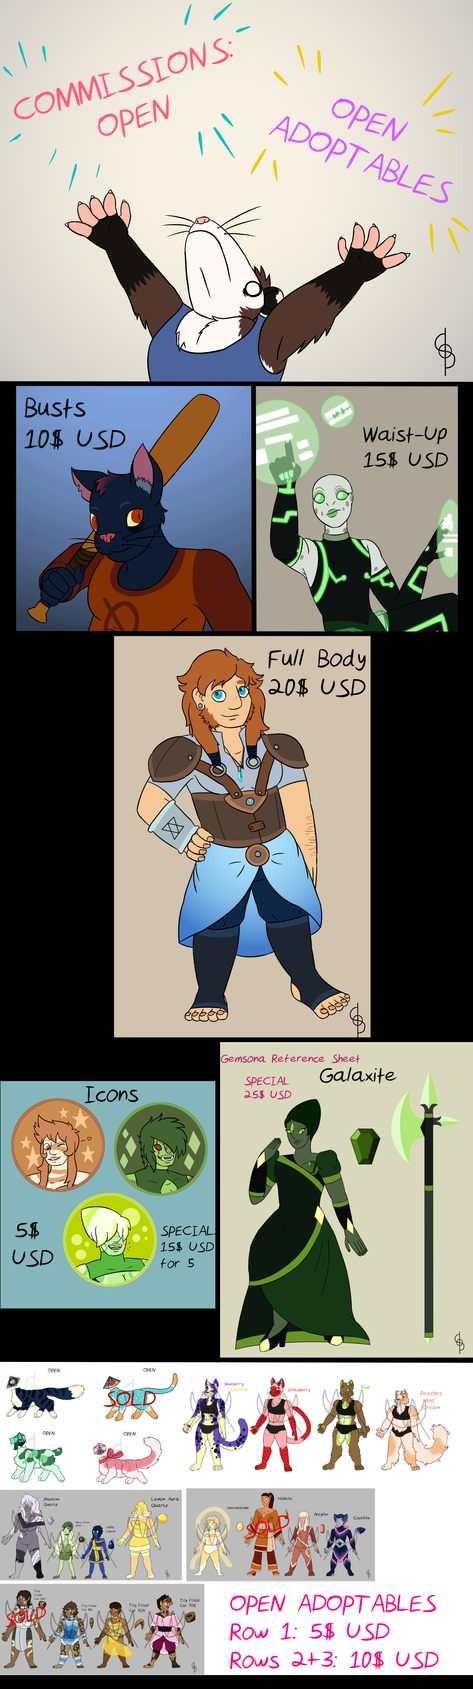 2017 Commissions Sheet by Flareblade2000